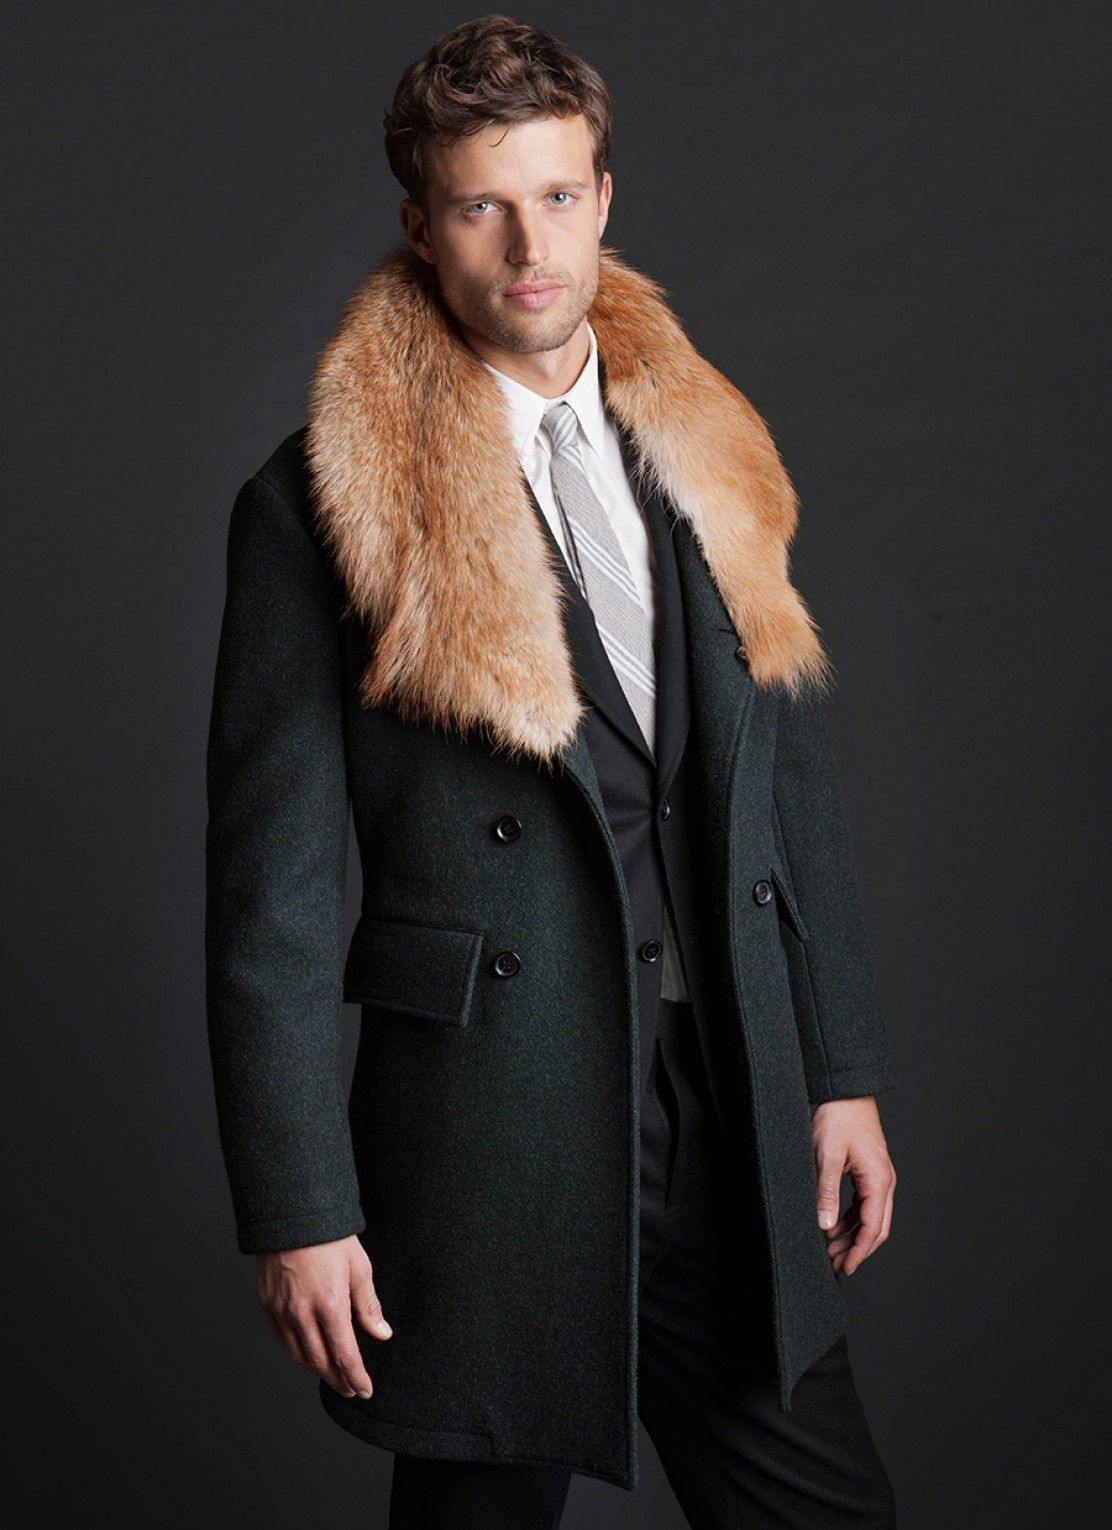 Green Lafayette Coat, Billy Reid: Wool & Cashmere, Six-On-Two Double Breasted Front, Removable Coyote Fur Collar